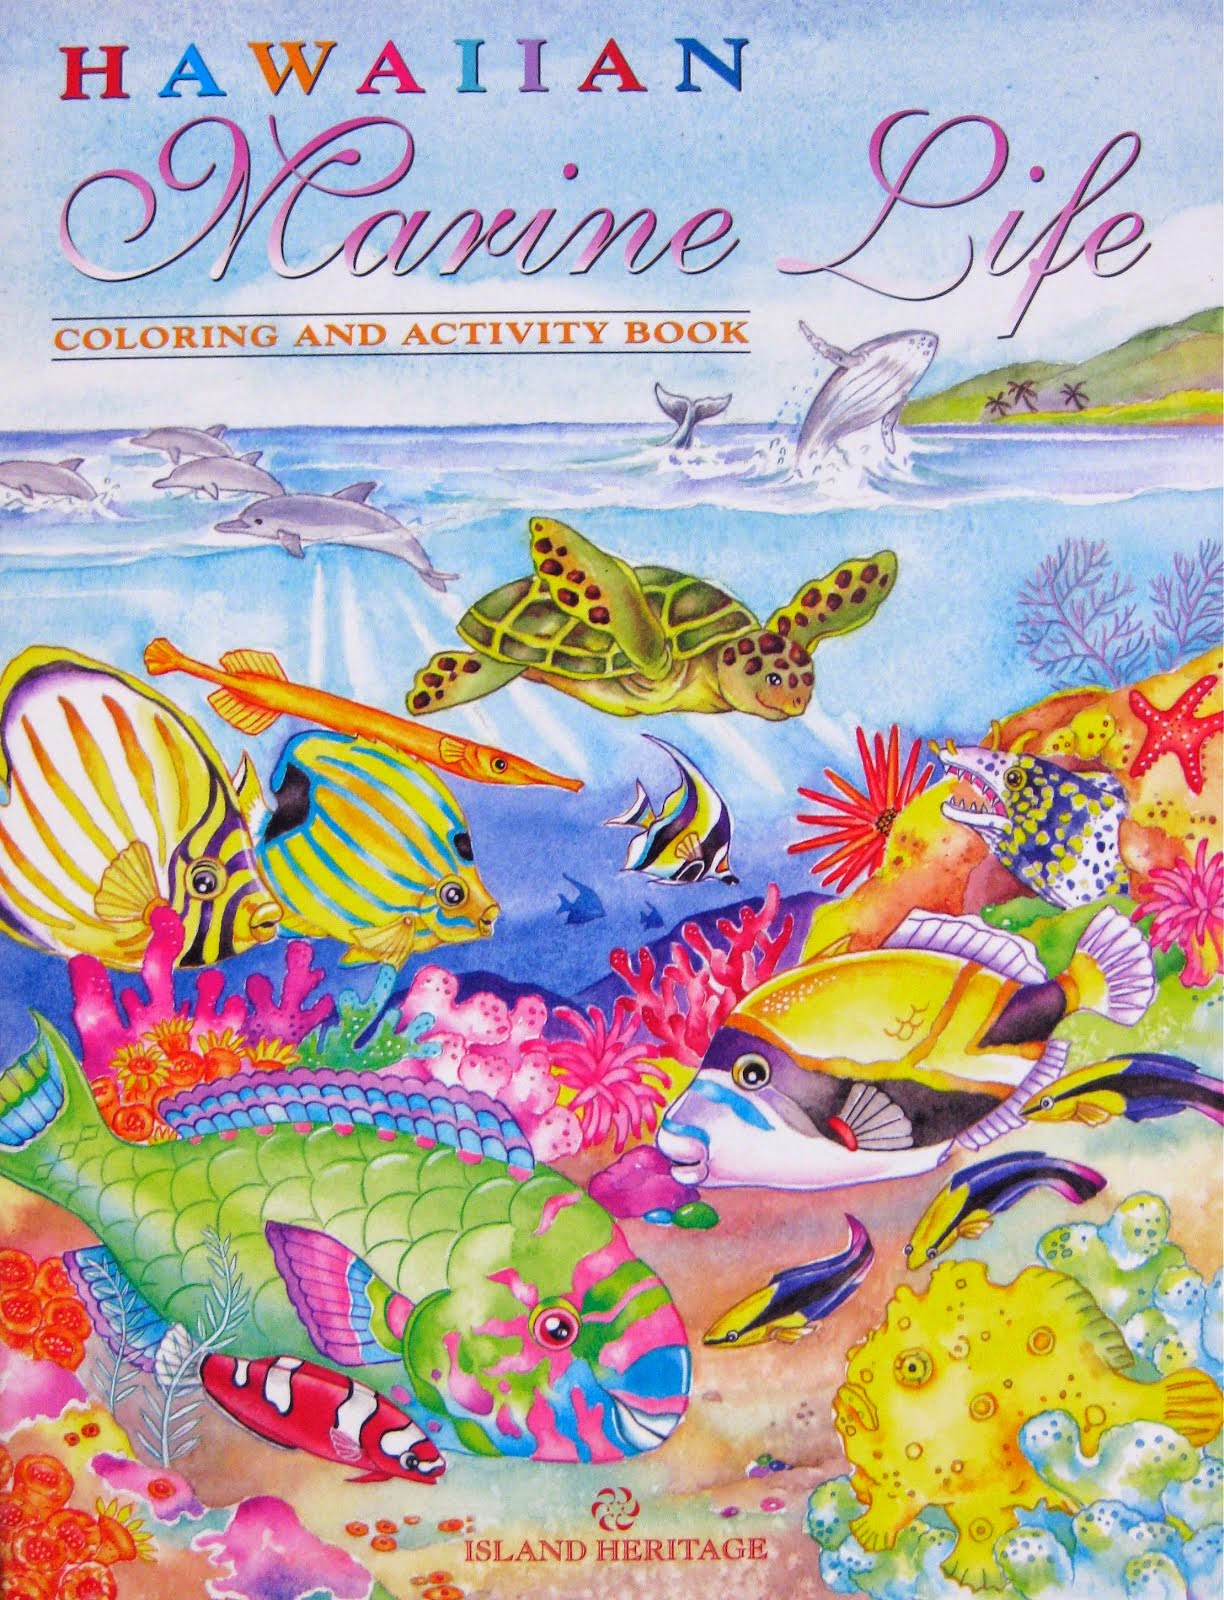 Hawaiian Marine Life coloring and activity book